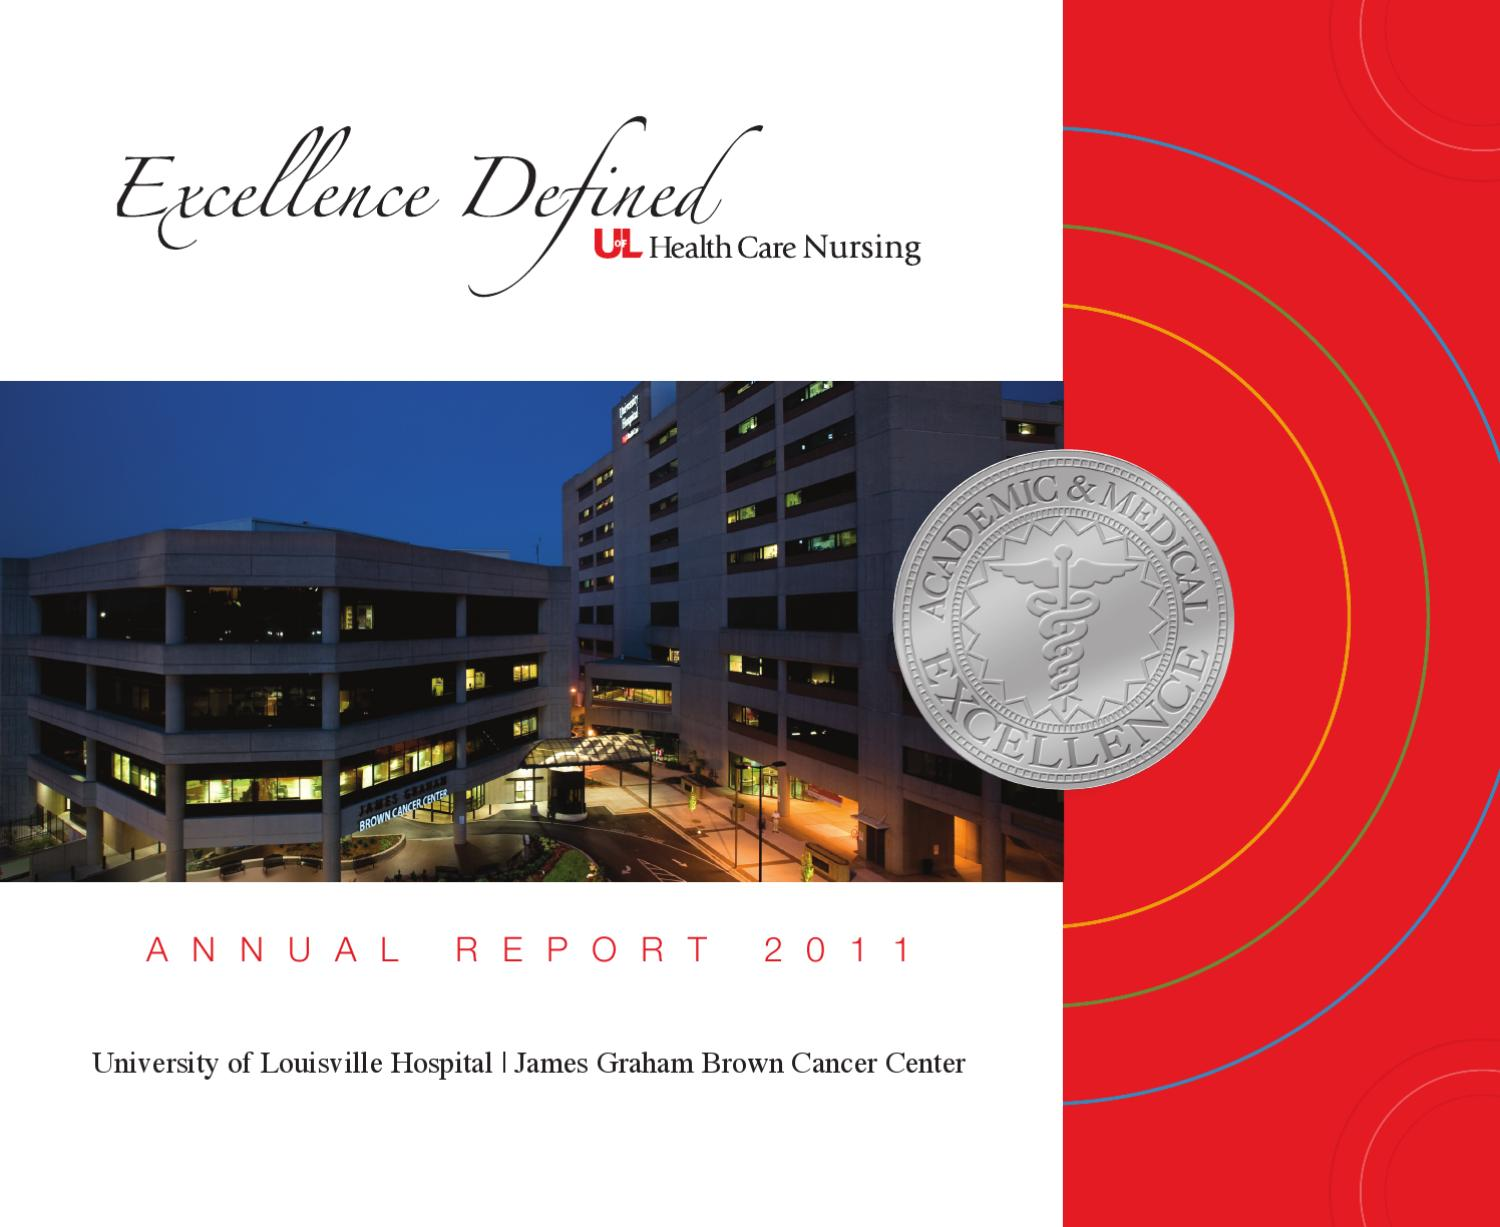 Uofl Nursing Aunnal Report 2011 By Ulh Webmaster Issuu